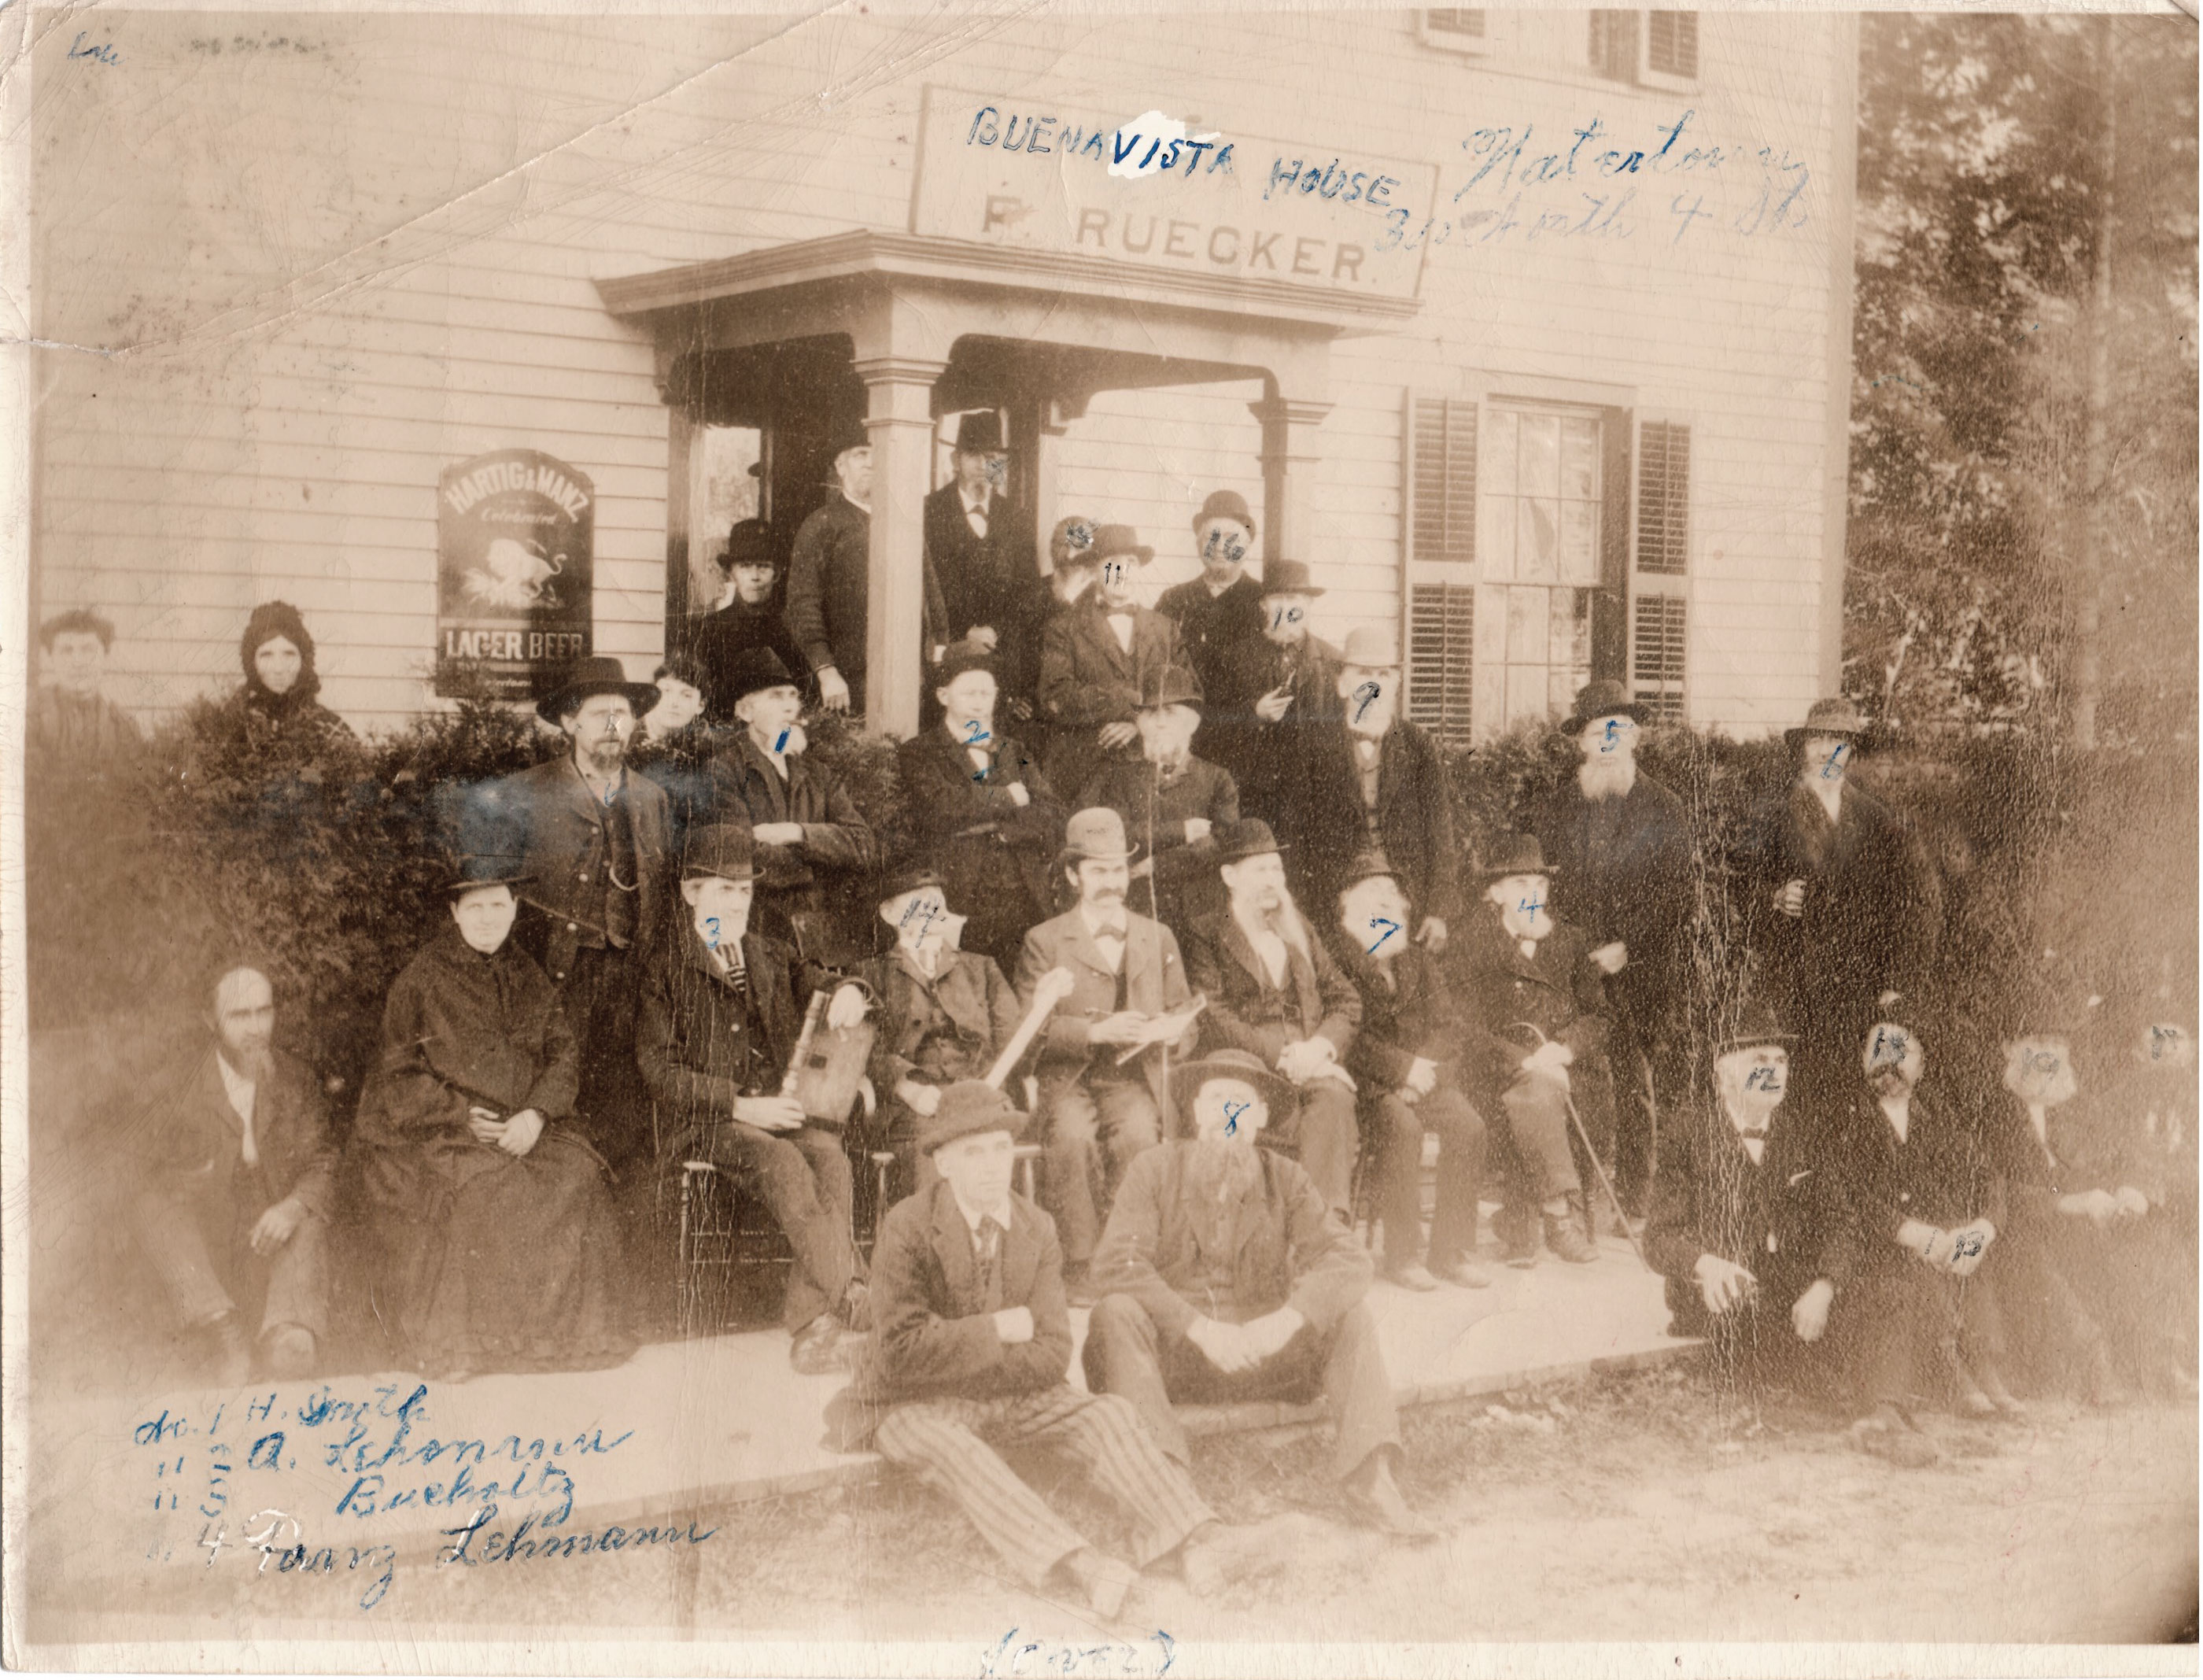 Founding Fathers of Watertown Mutual Insurance Co, Watertown, WI. Circa 1875-76.